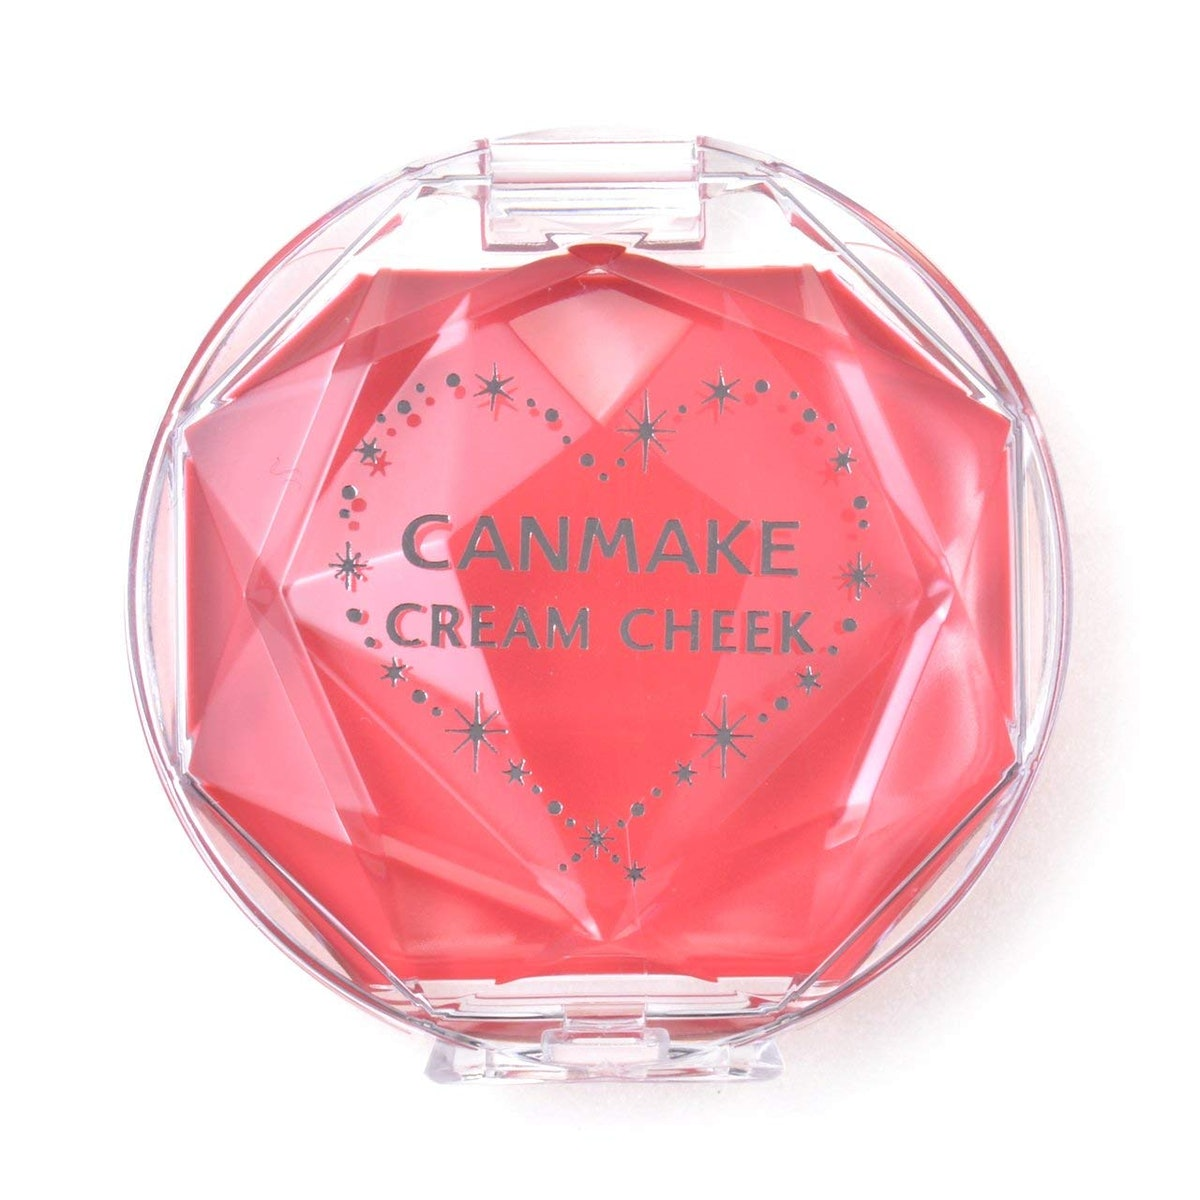 Canmake Cream Cheek in Apricot